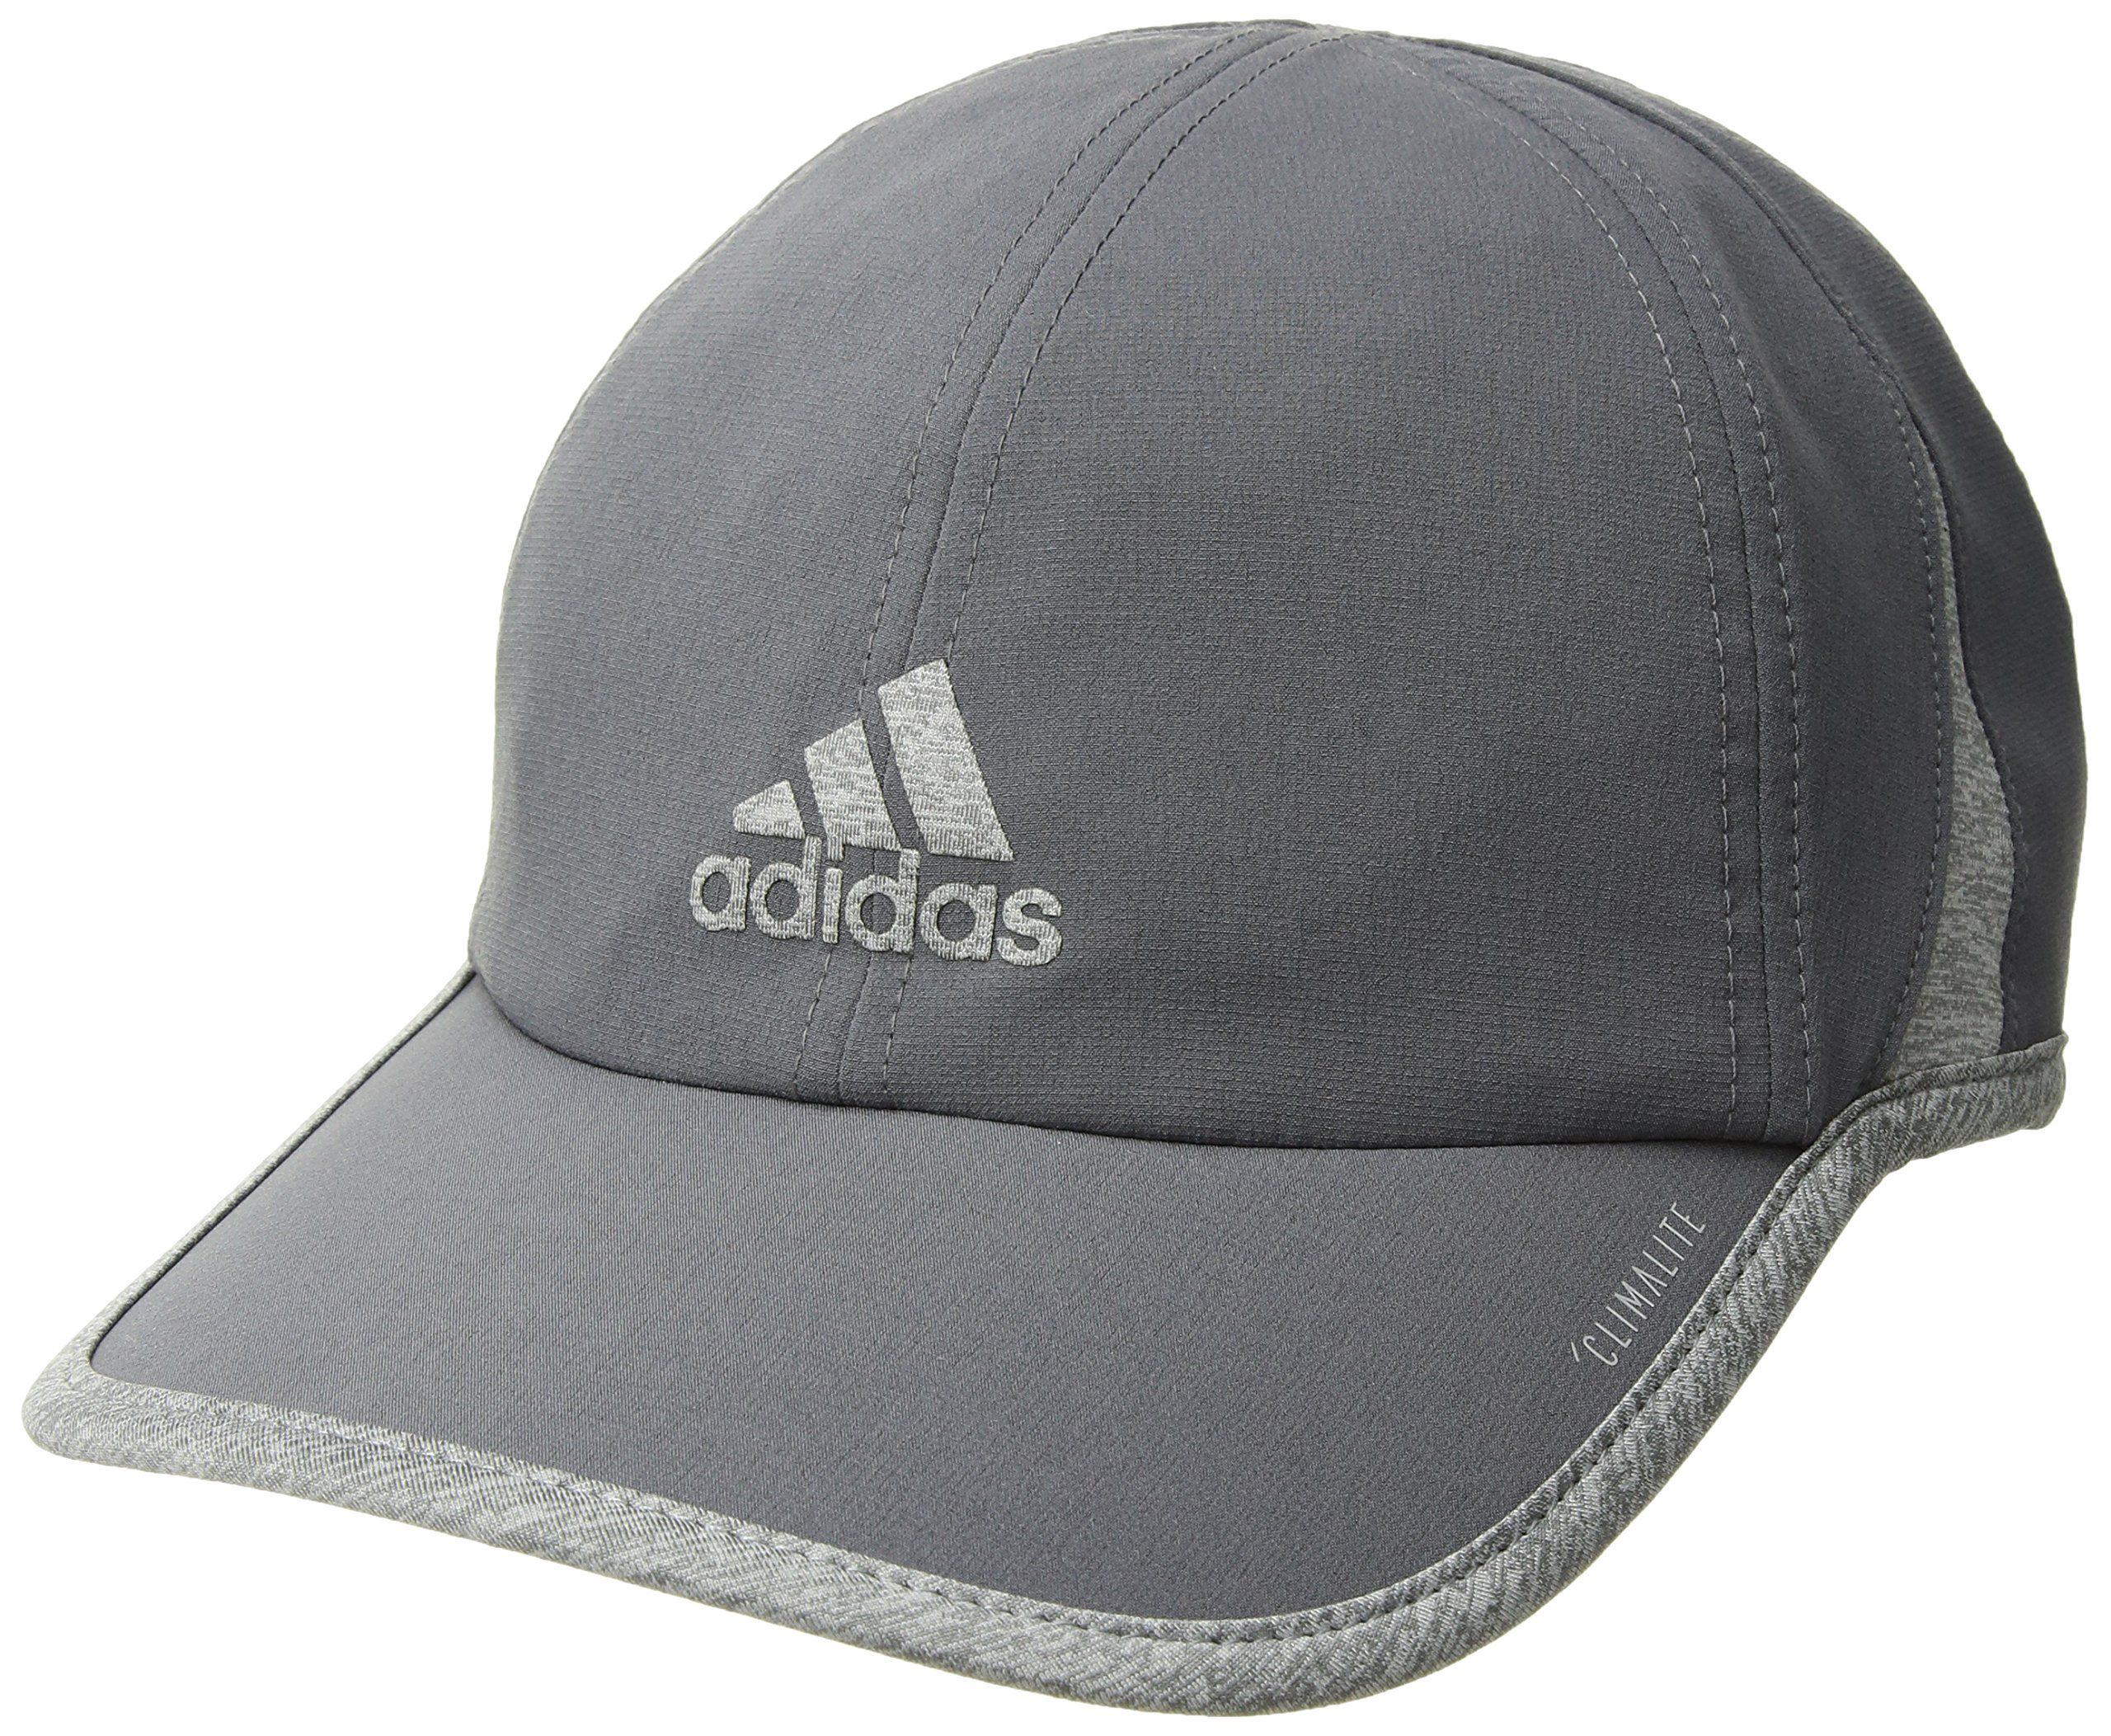 adidas Men's Superlite Relaxed Adjustable Performance Cap, Onix/Light Heather Grey, One Size